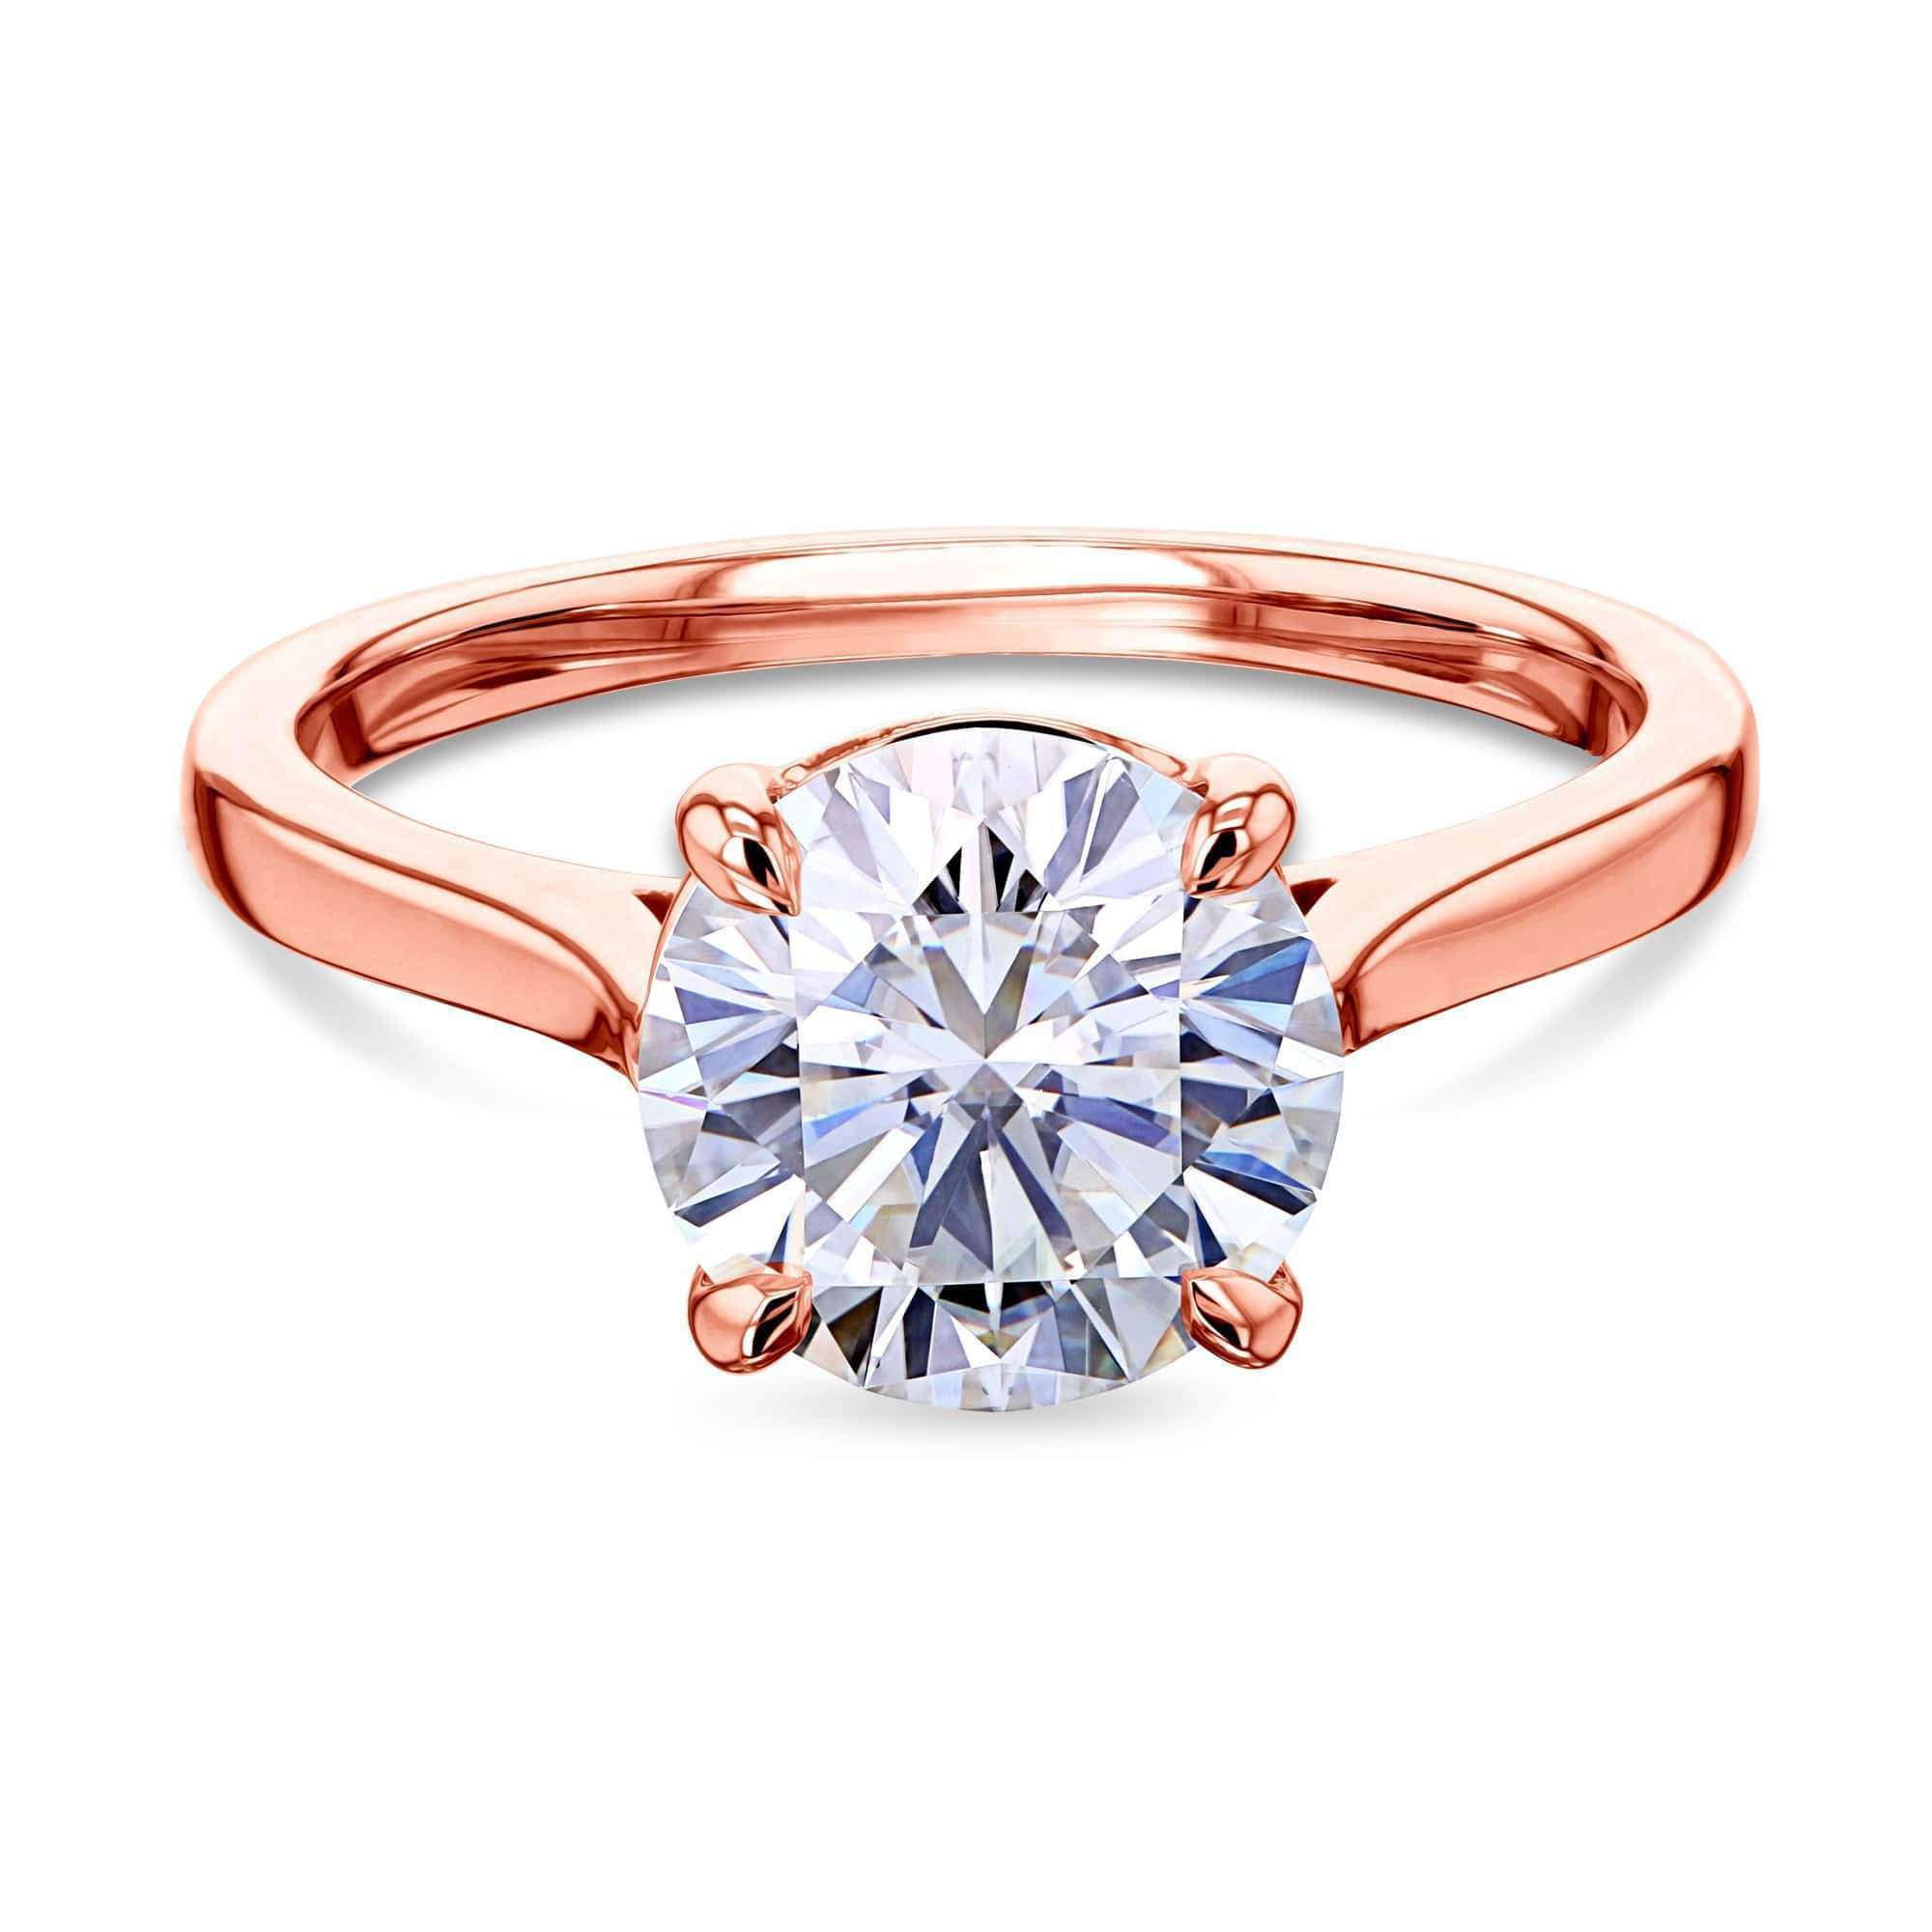 Best 1.9ct Round Forever One Moissanite Solitaire Ring - rose-gold 9.5